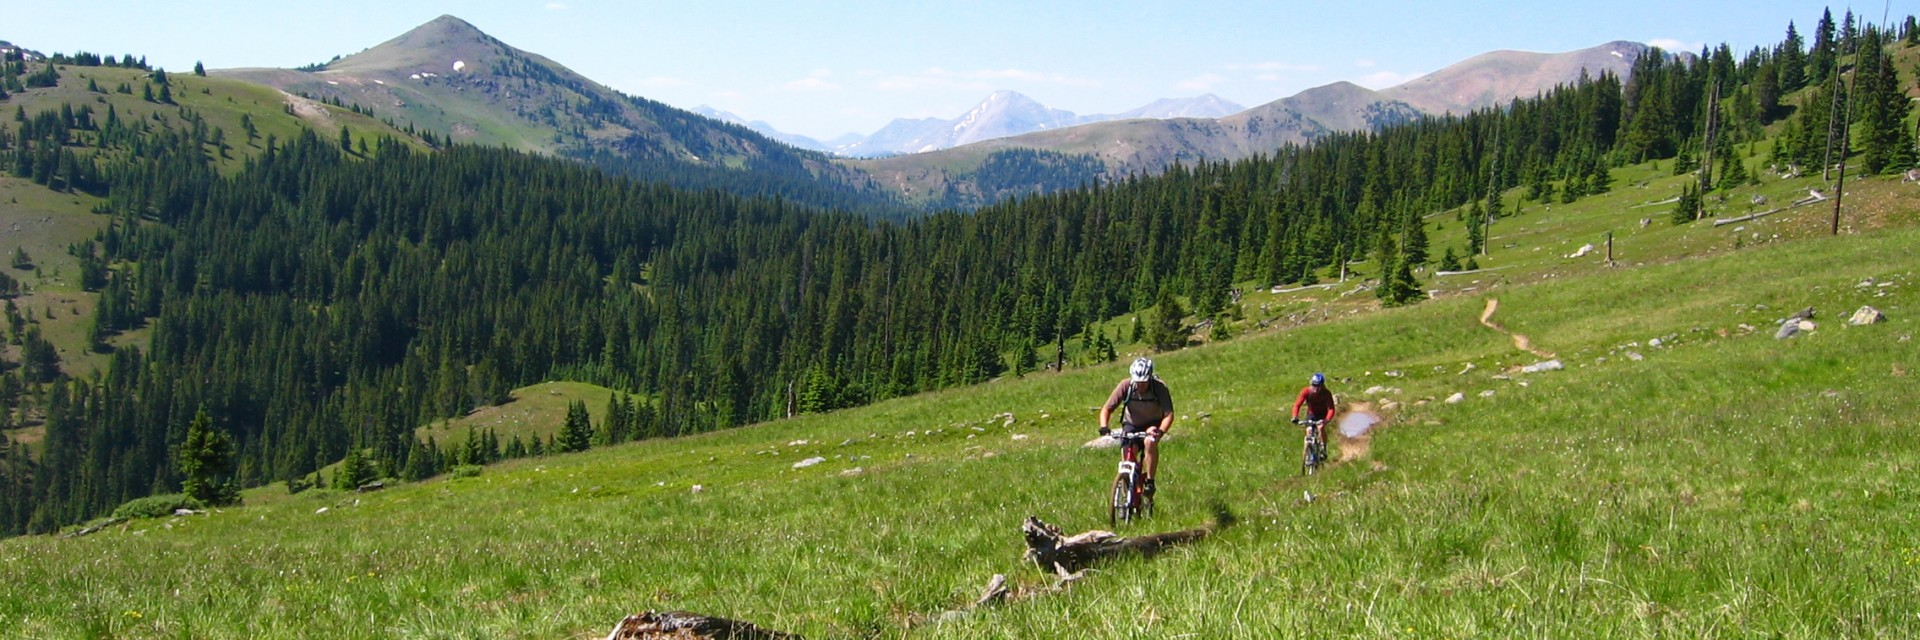 Riders traverse a high meadow on the Durango - Colorado Trail Singletrack during a mid-summer guided mountain bike tour